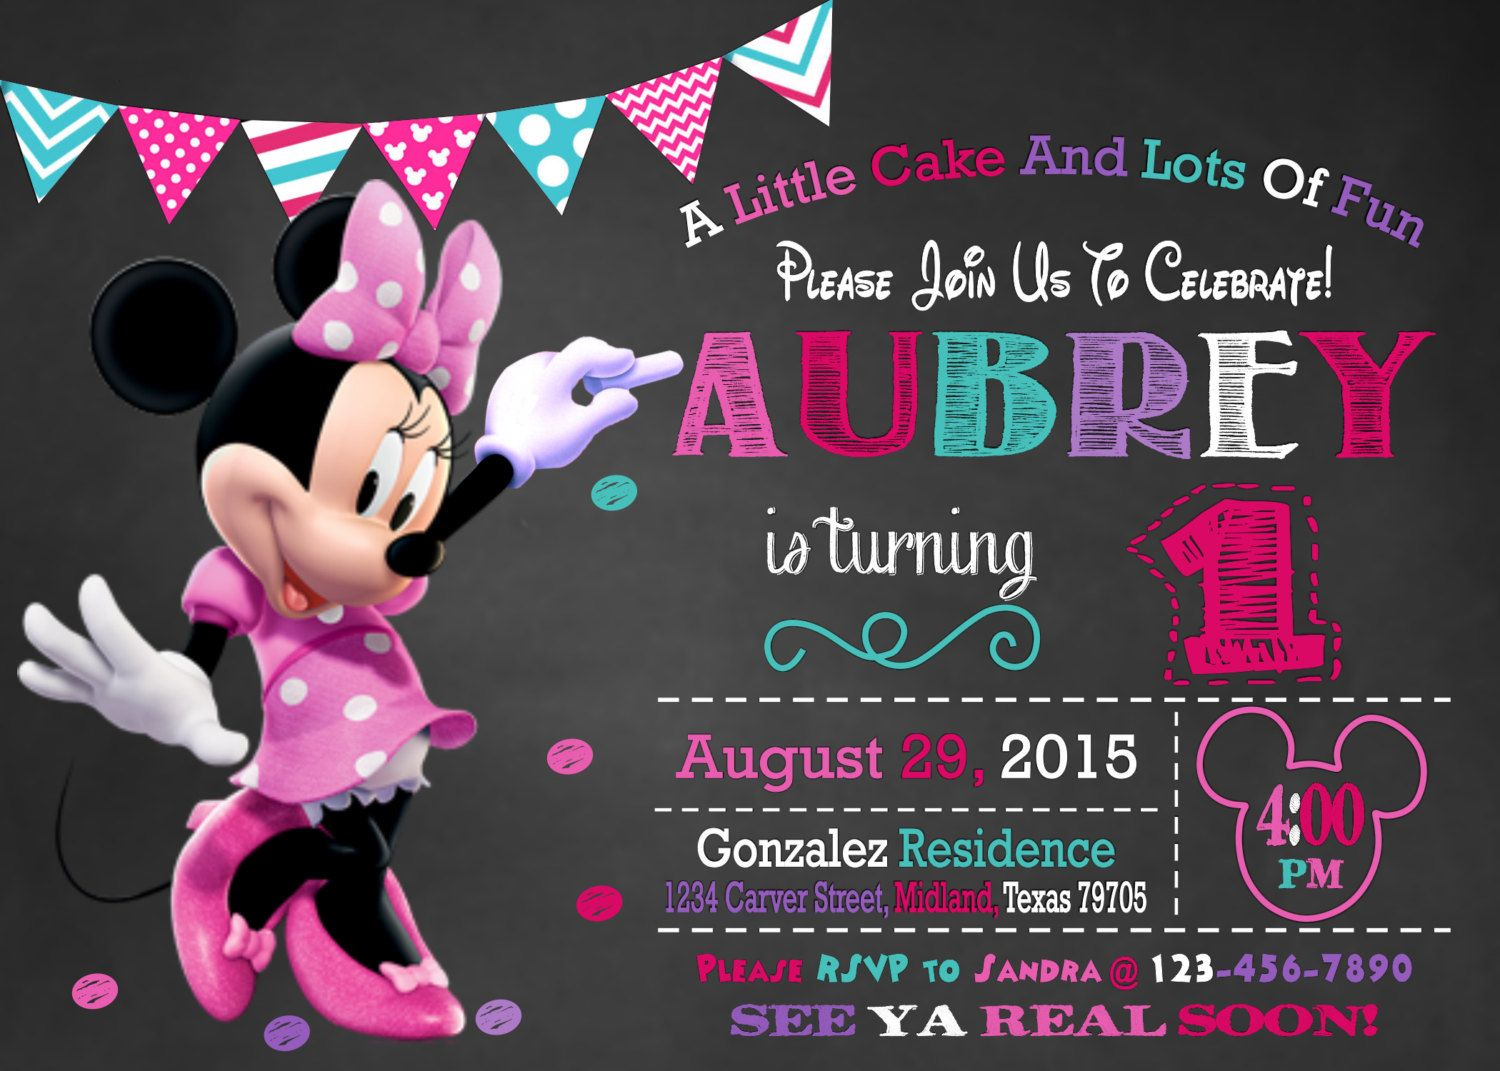 wording ideas forst birthday party invitation%0A  st birthday invitation  MINNIE MOUSE  Birthday INVITATIONS  Minnie  Mouse  Invita  View